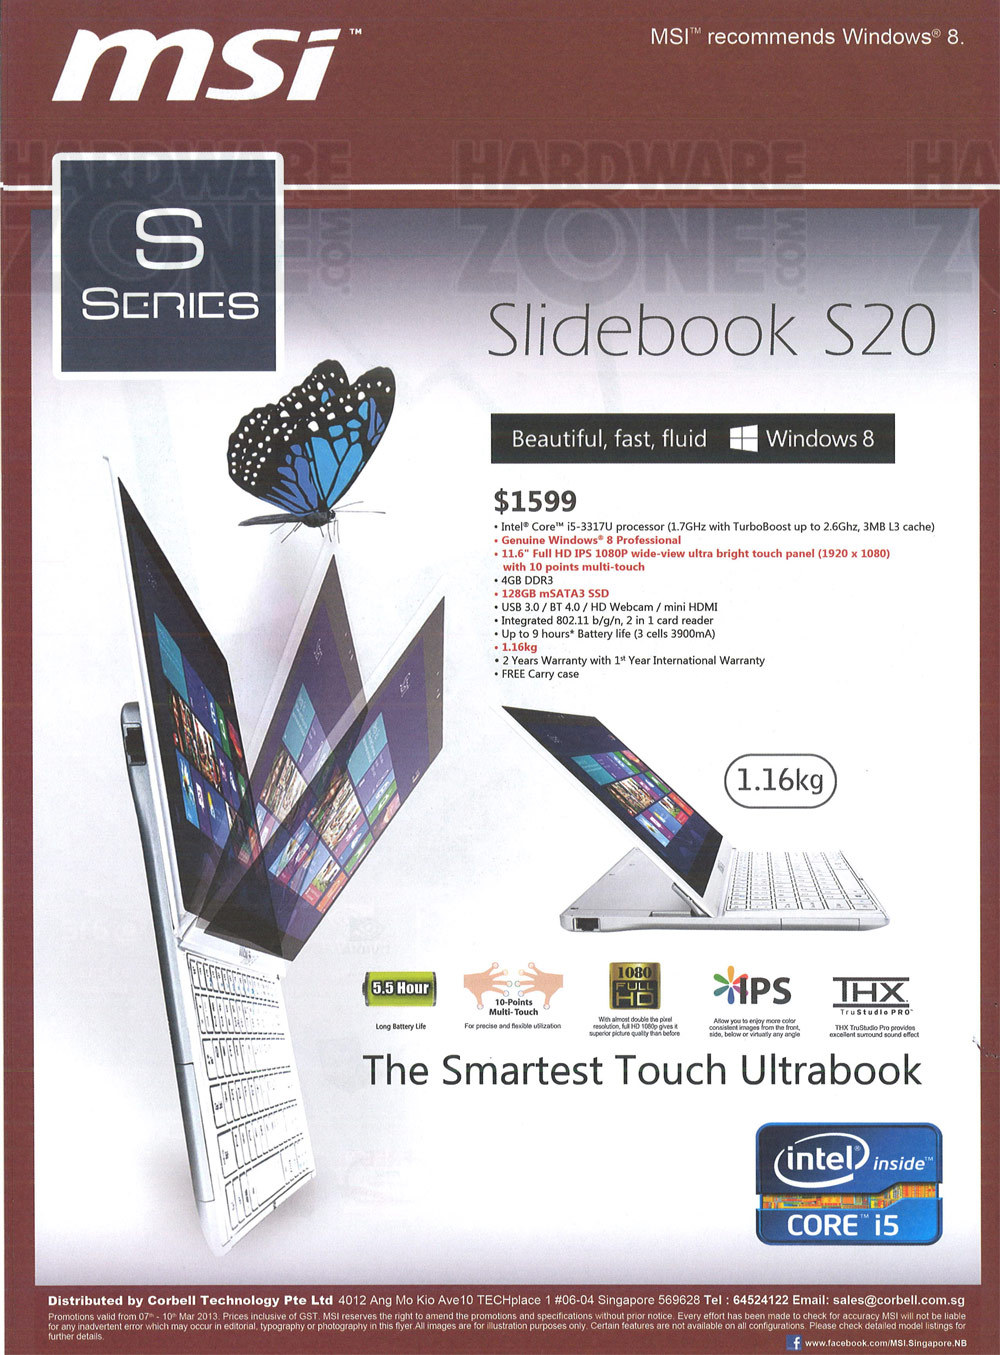 MSI Slidebook S20